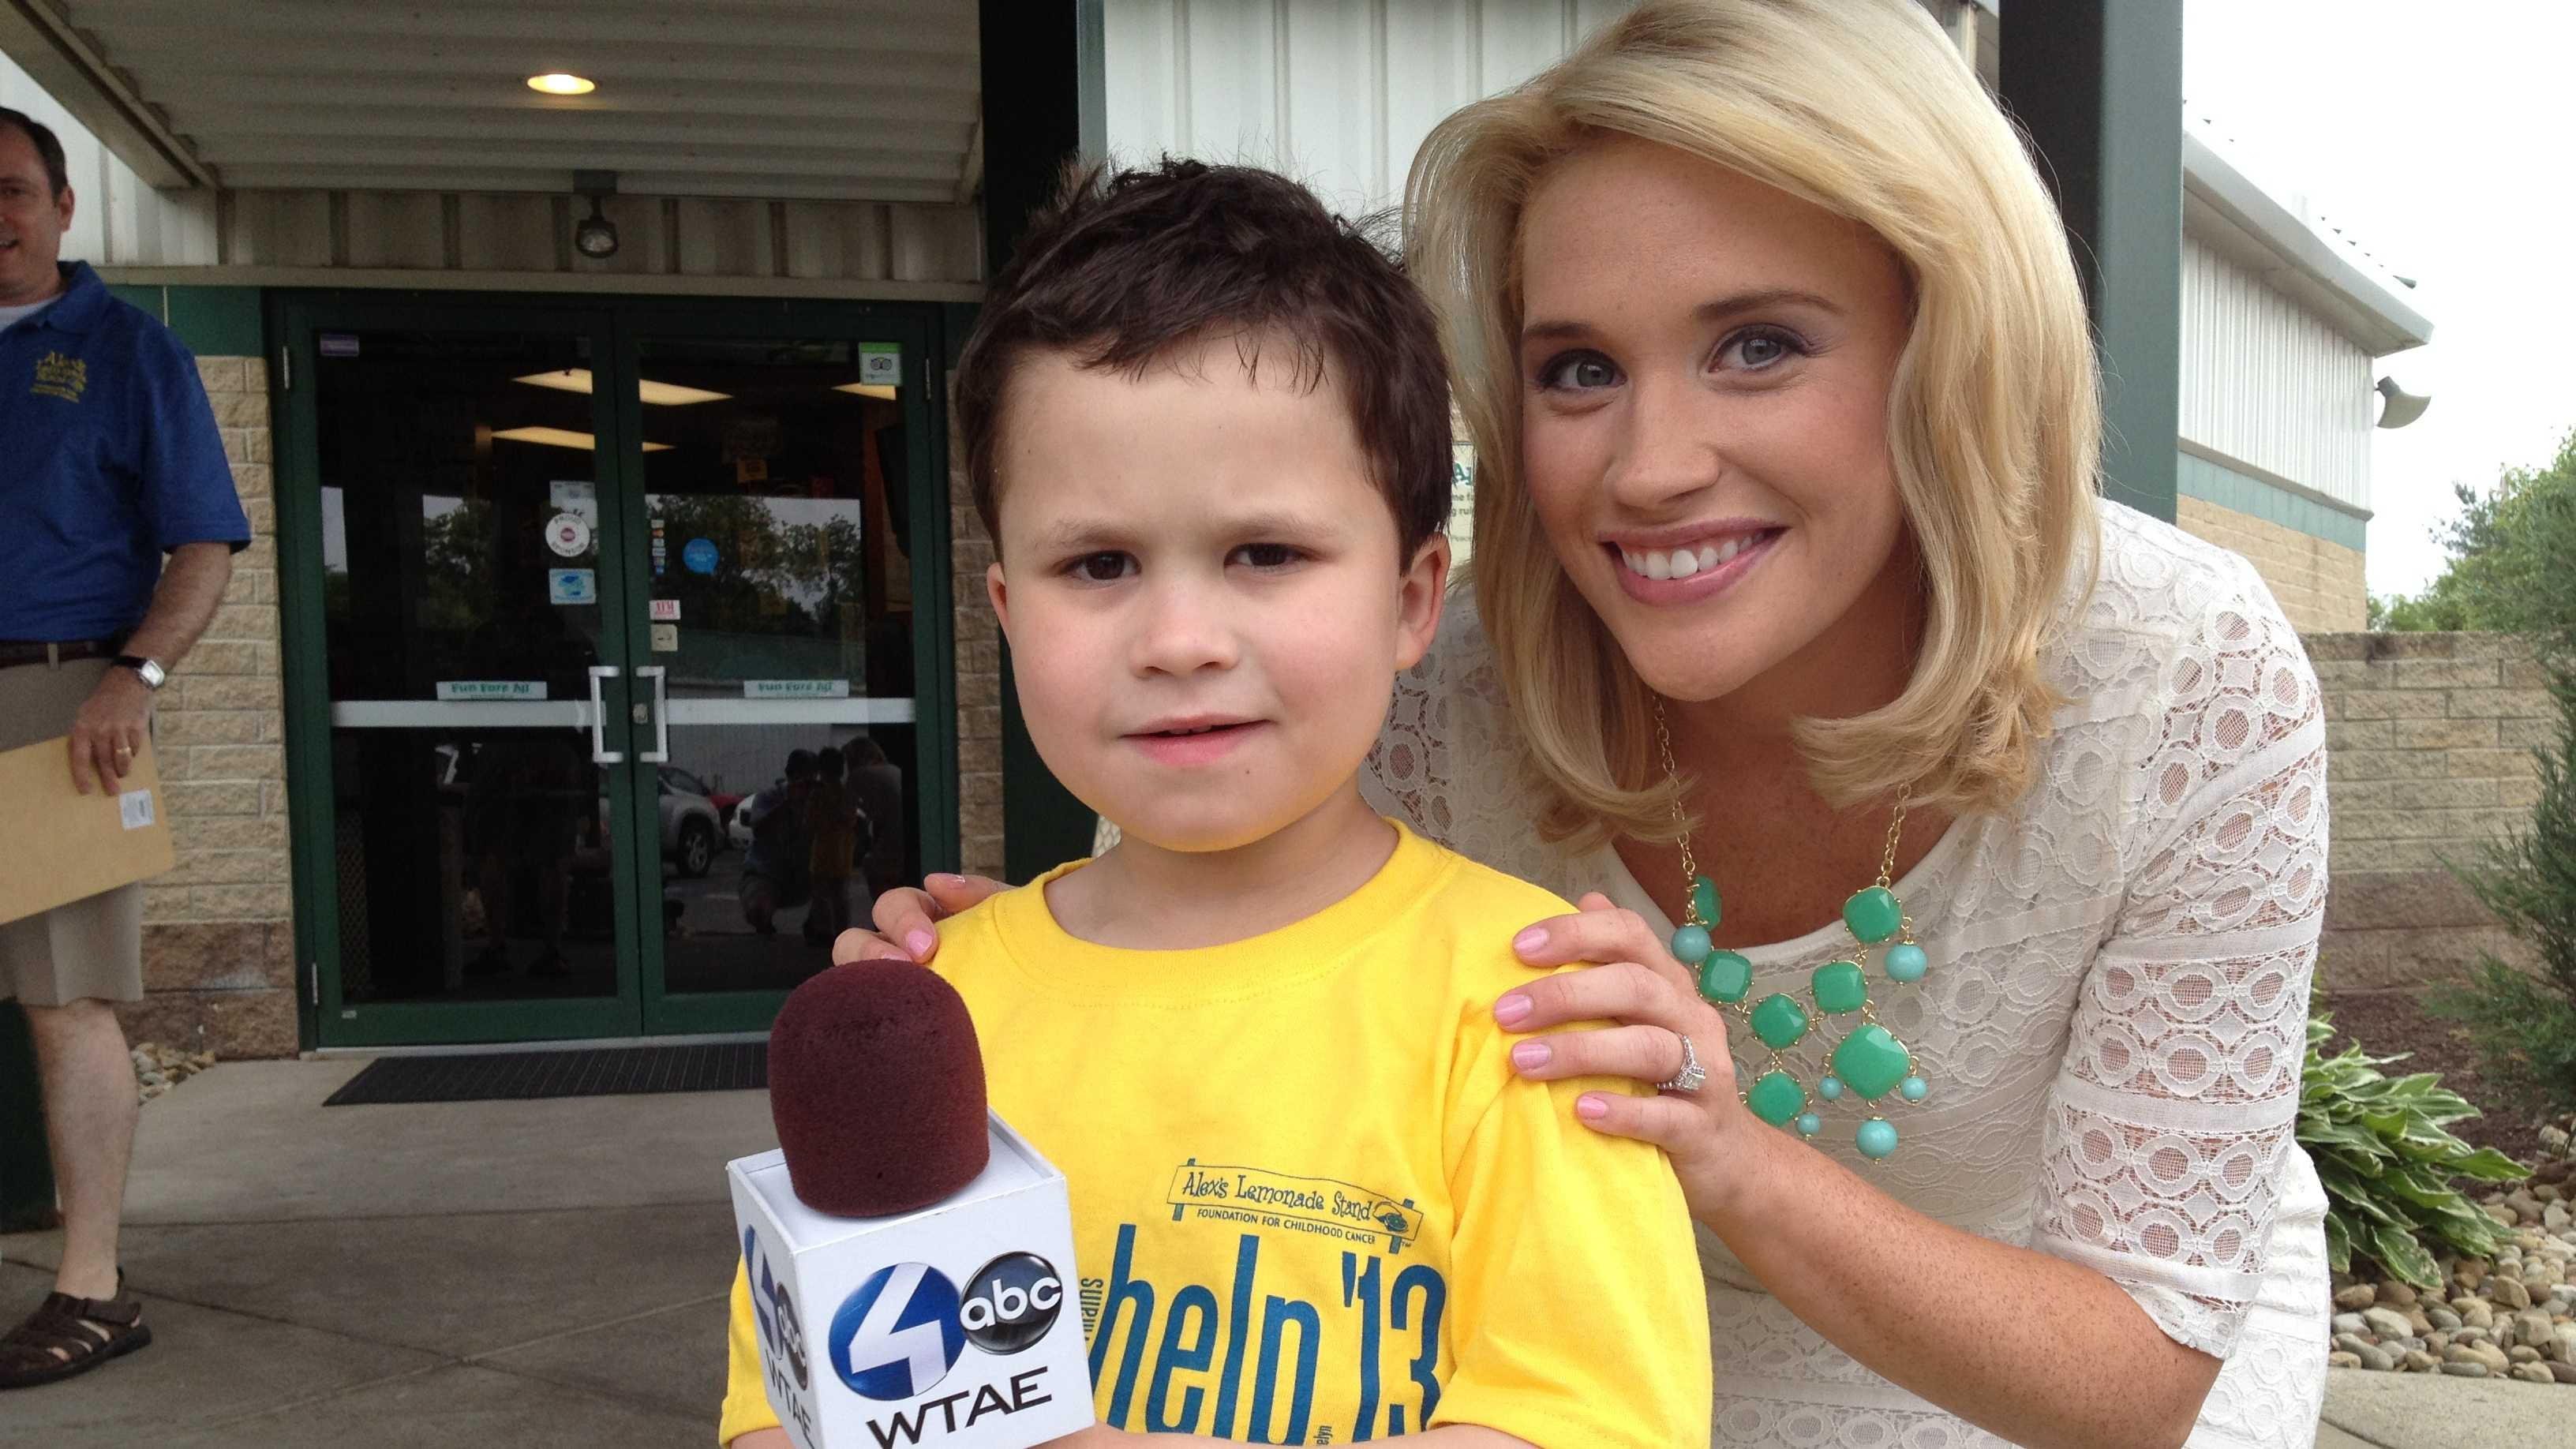 Channel 4 Action News' Jackie Schafer with 5-year-old Cory Efremenko, who is fighting leukemia